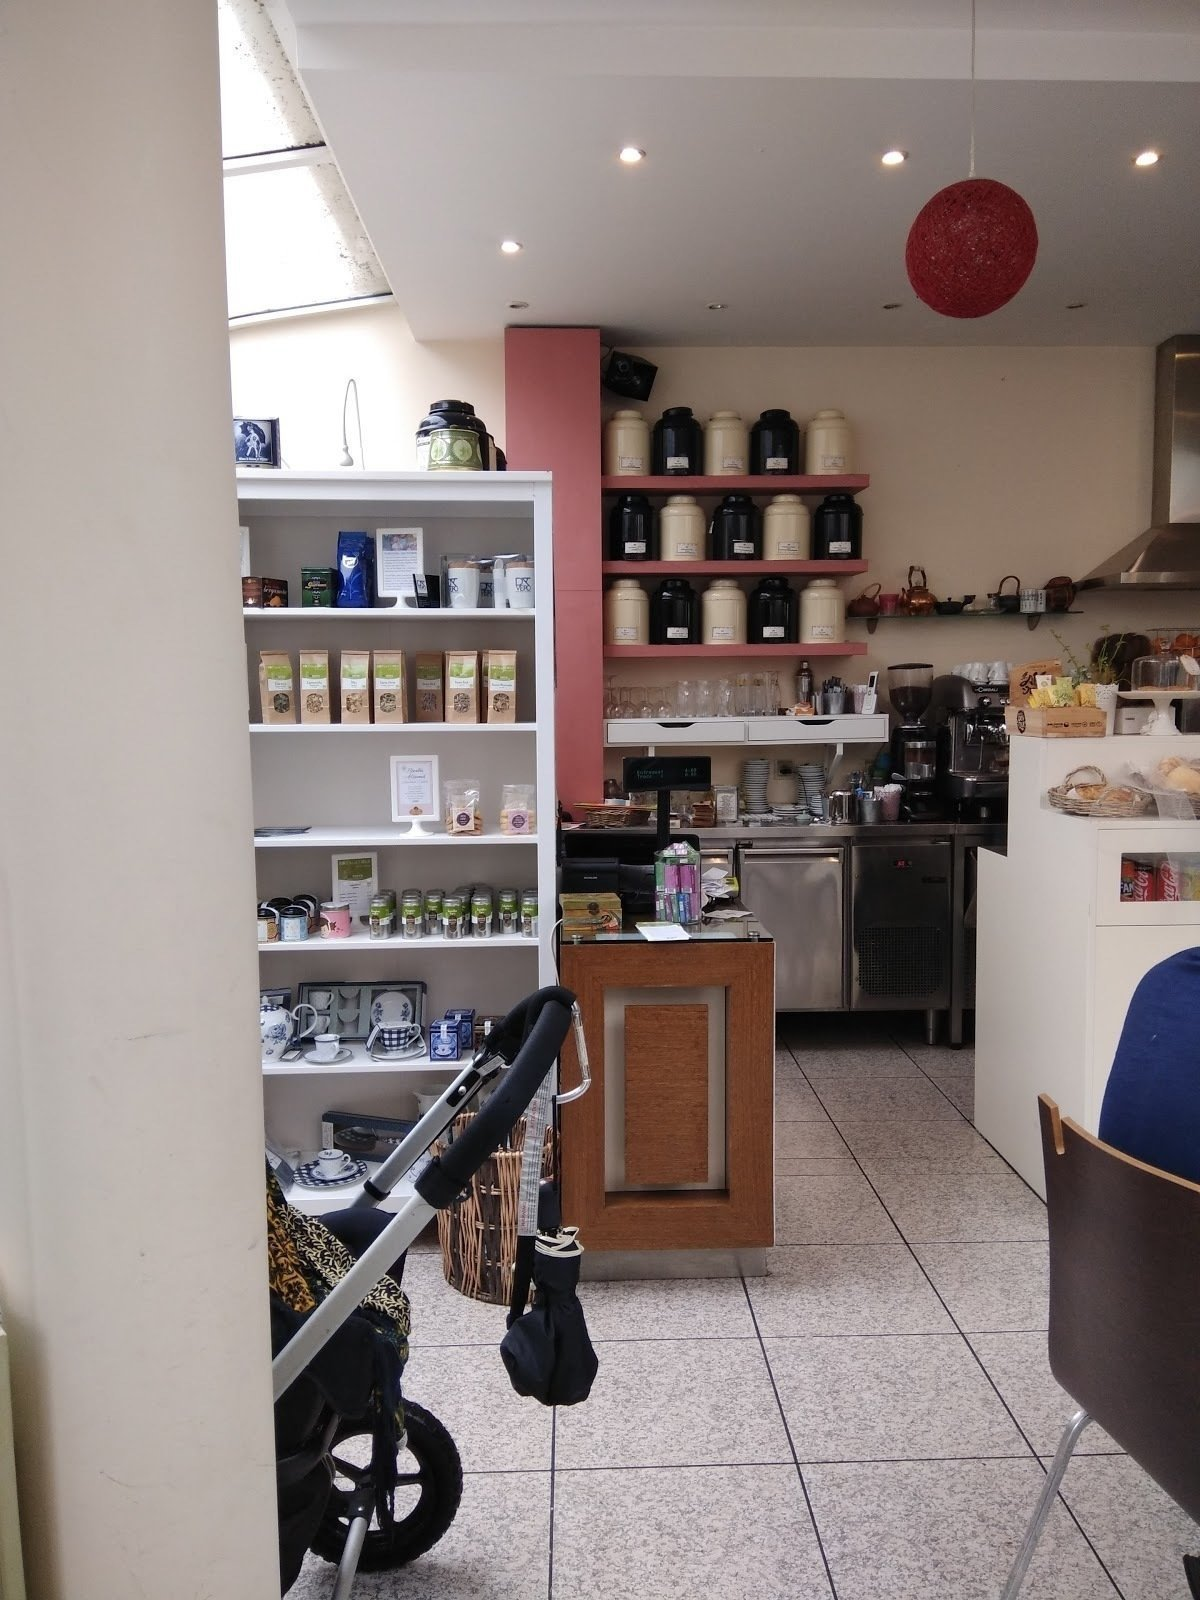 Doce Infusão: A Work-Friendly Place in Aveiro